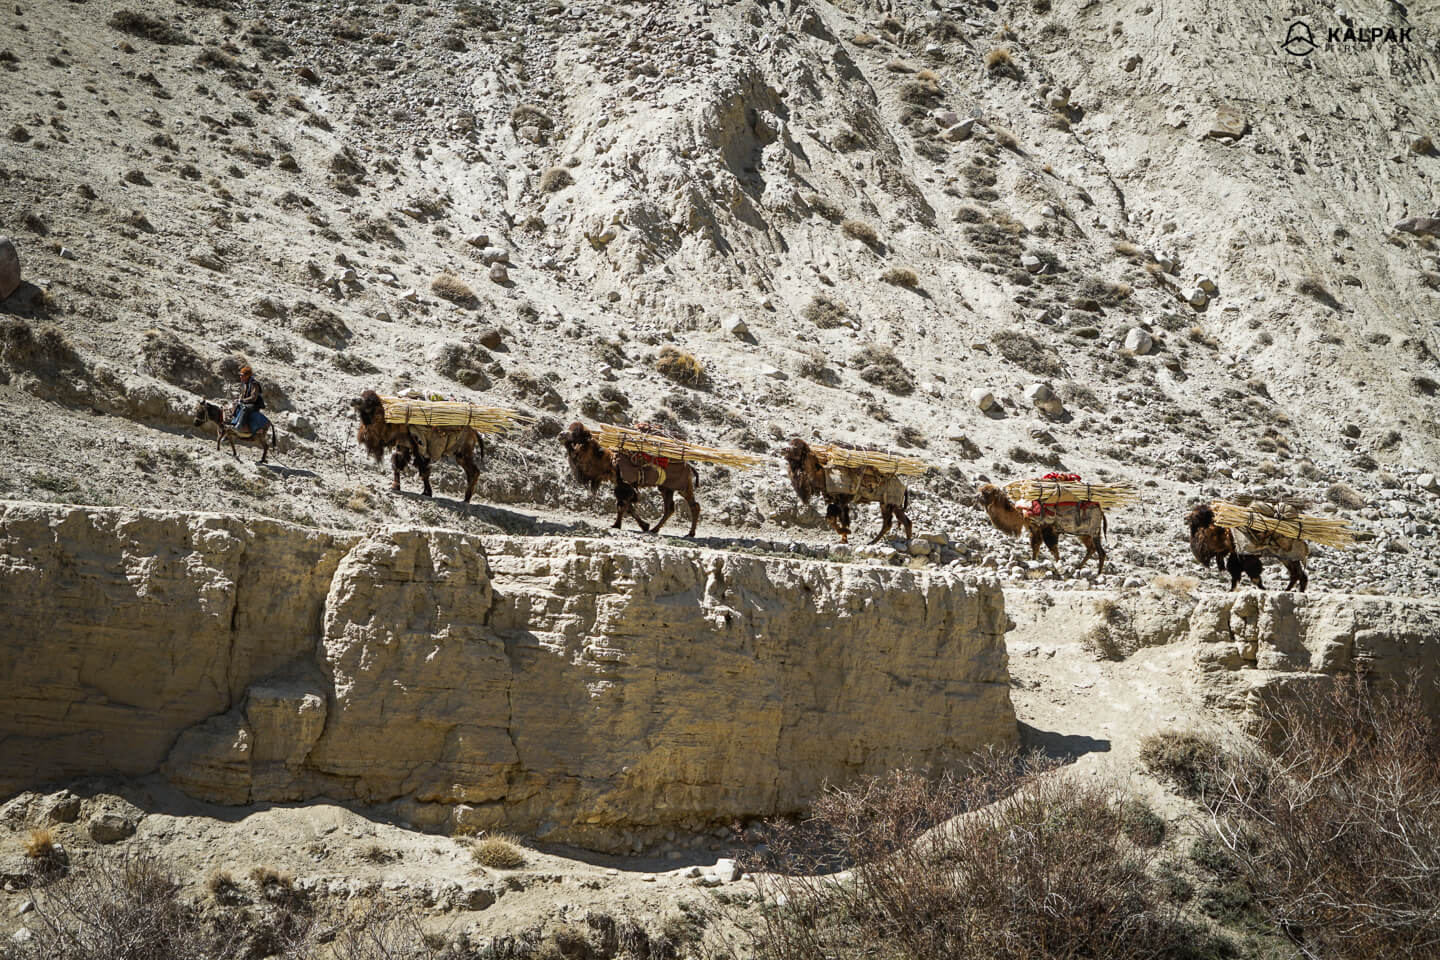 Camels on the Pamir Highway as in the times of the Silk Road trade